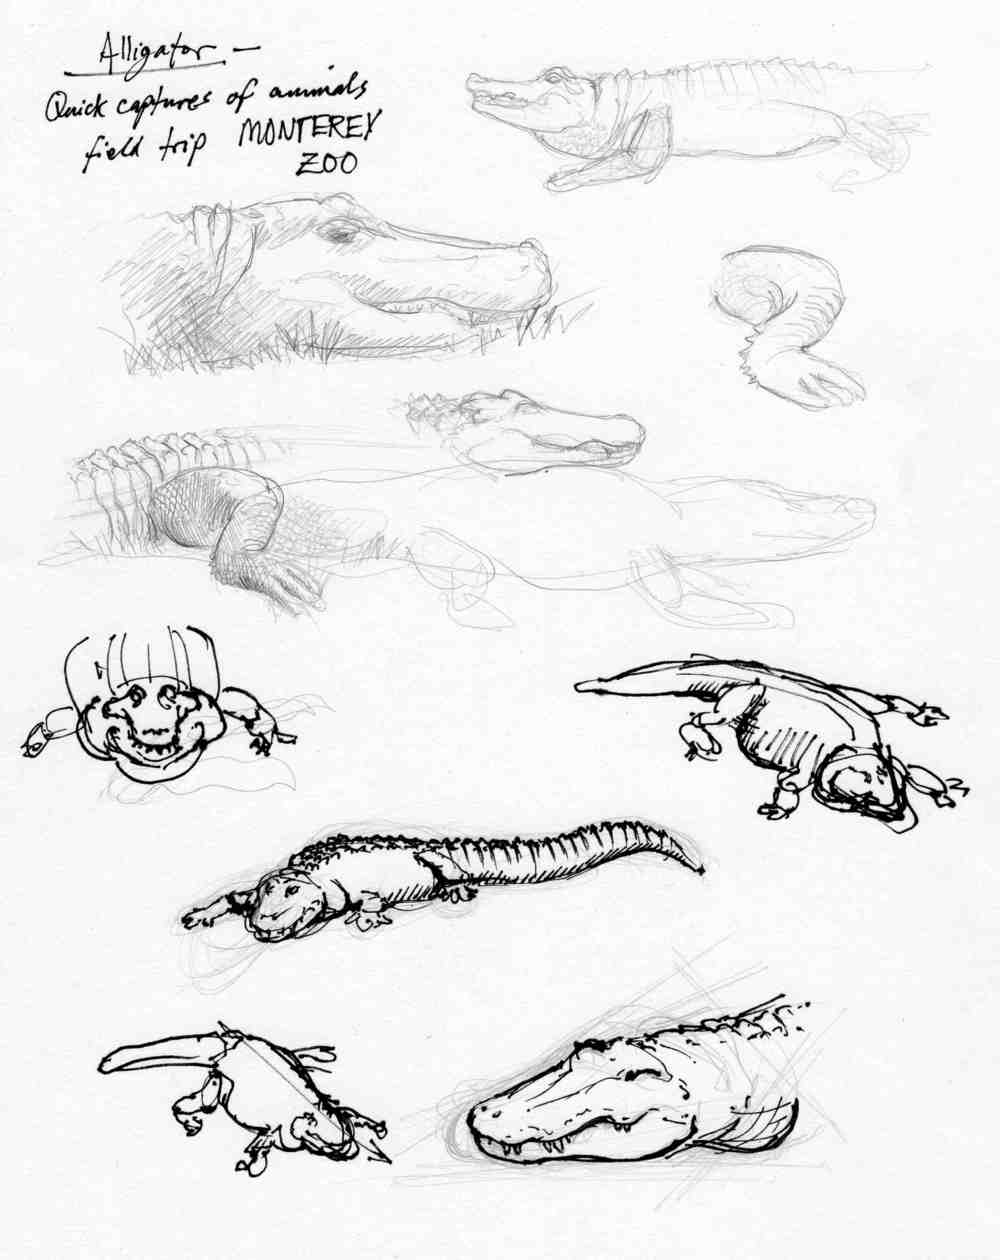 Alligator Studies